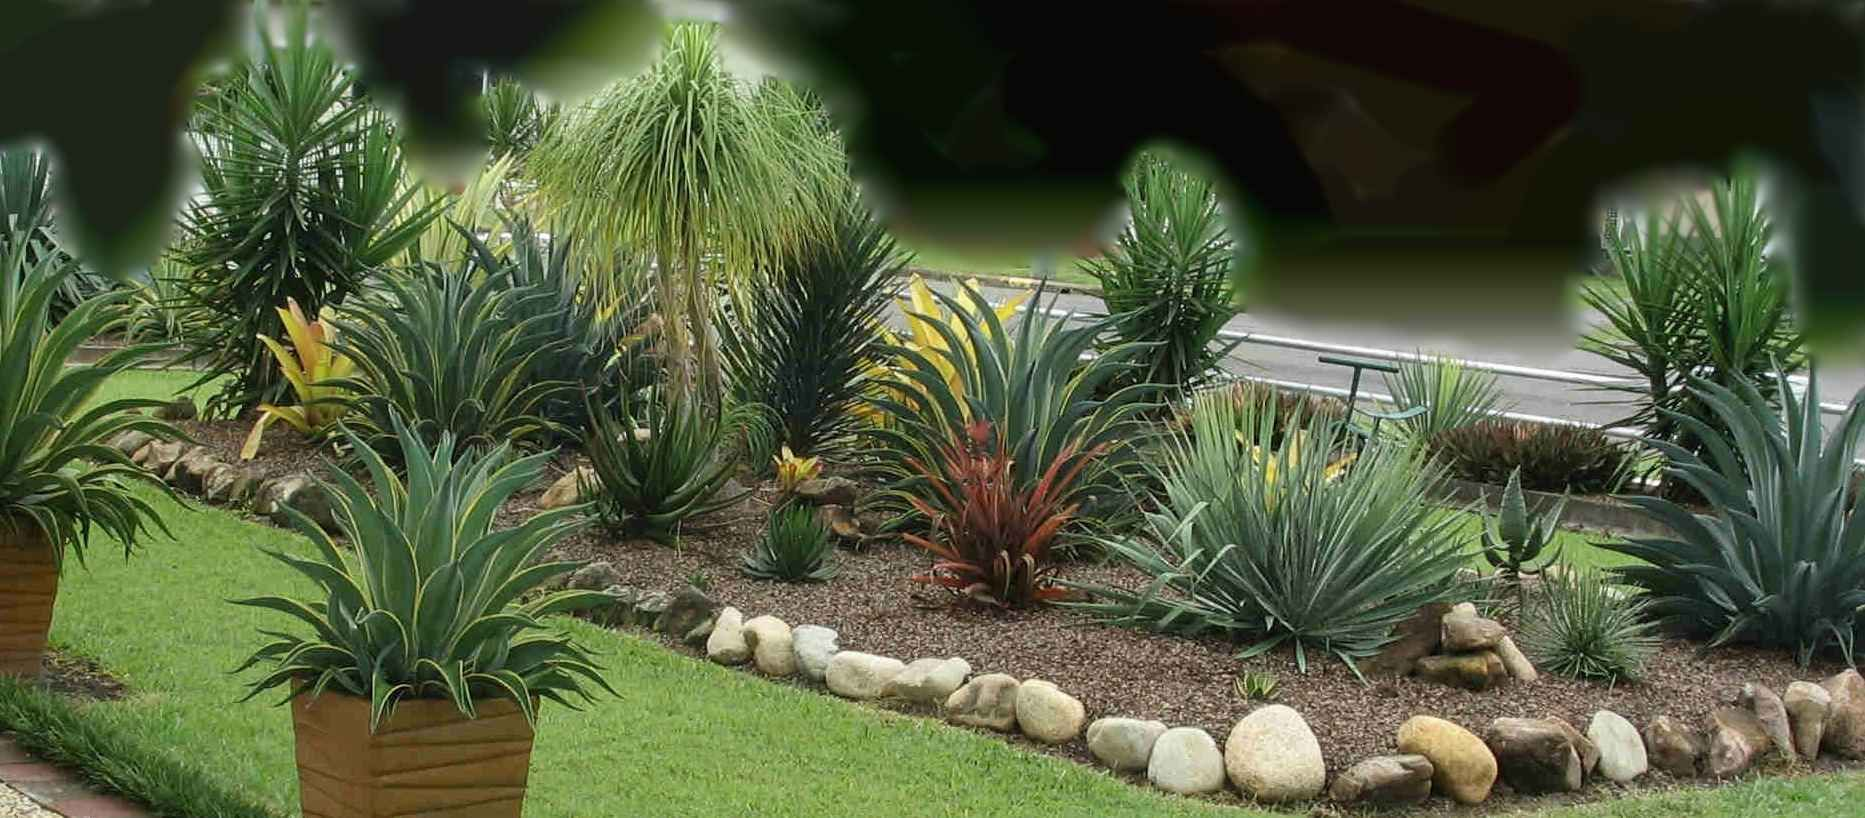 Top 28 yucca garden ideas 1000 images about natural for Arid garden design 7 little words